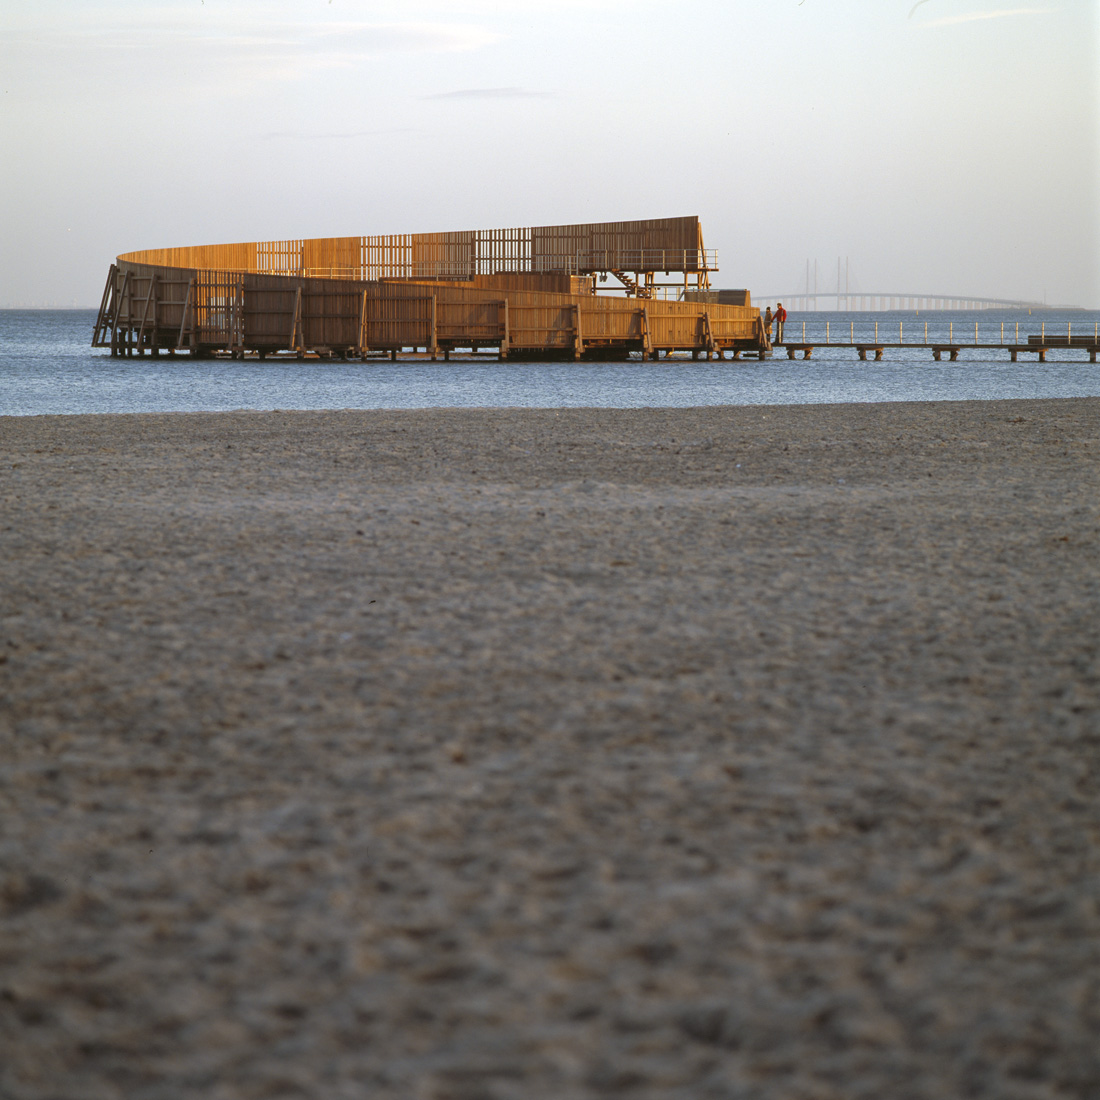 Kastrup Sea Bath / White arkitekter AB